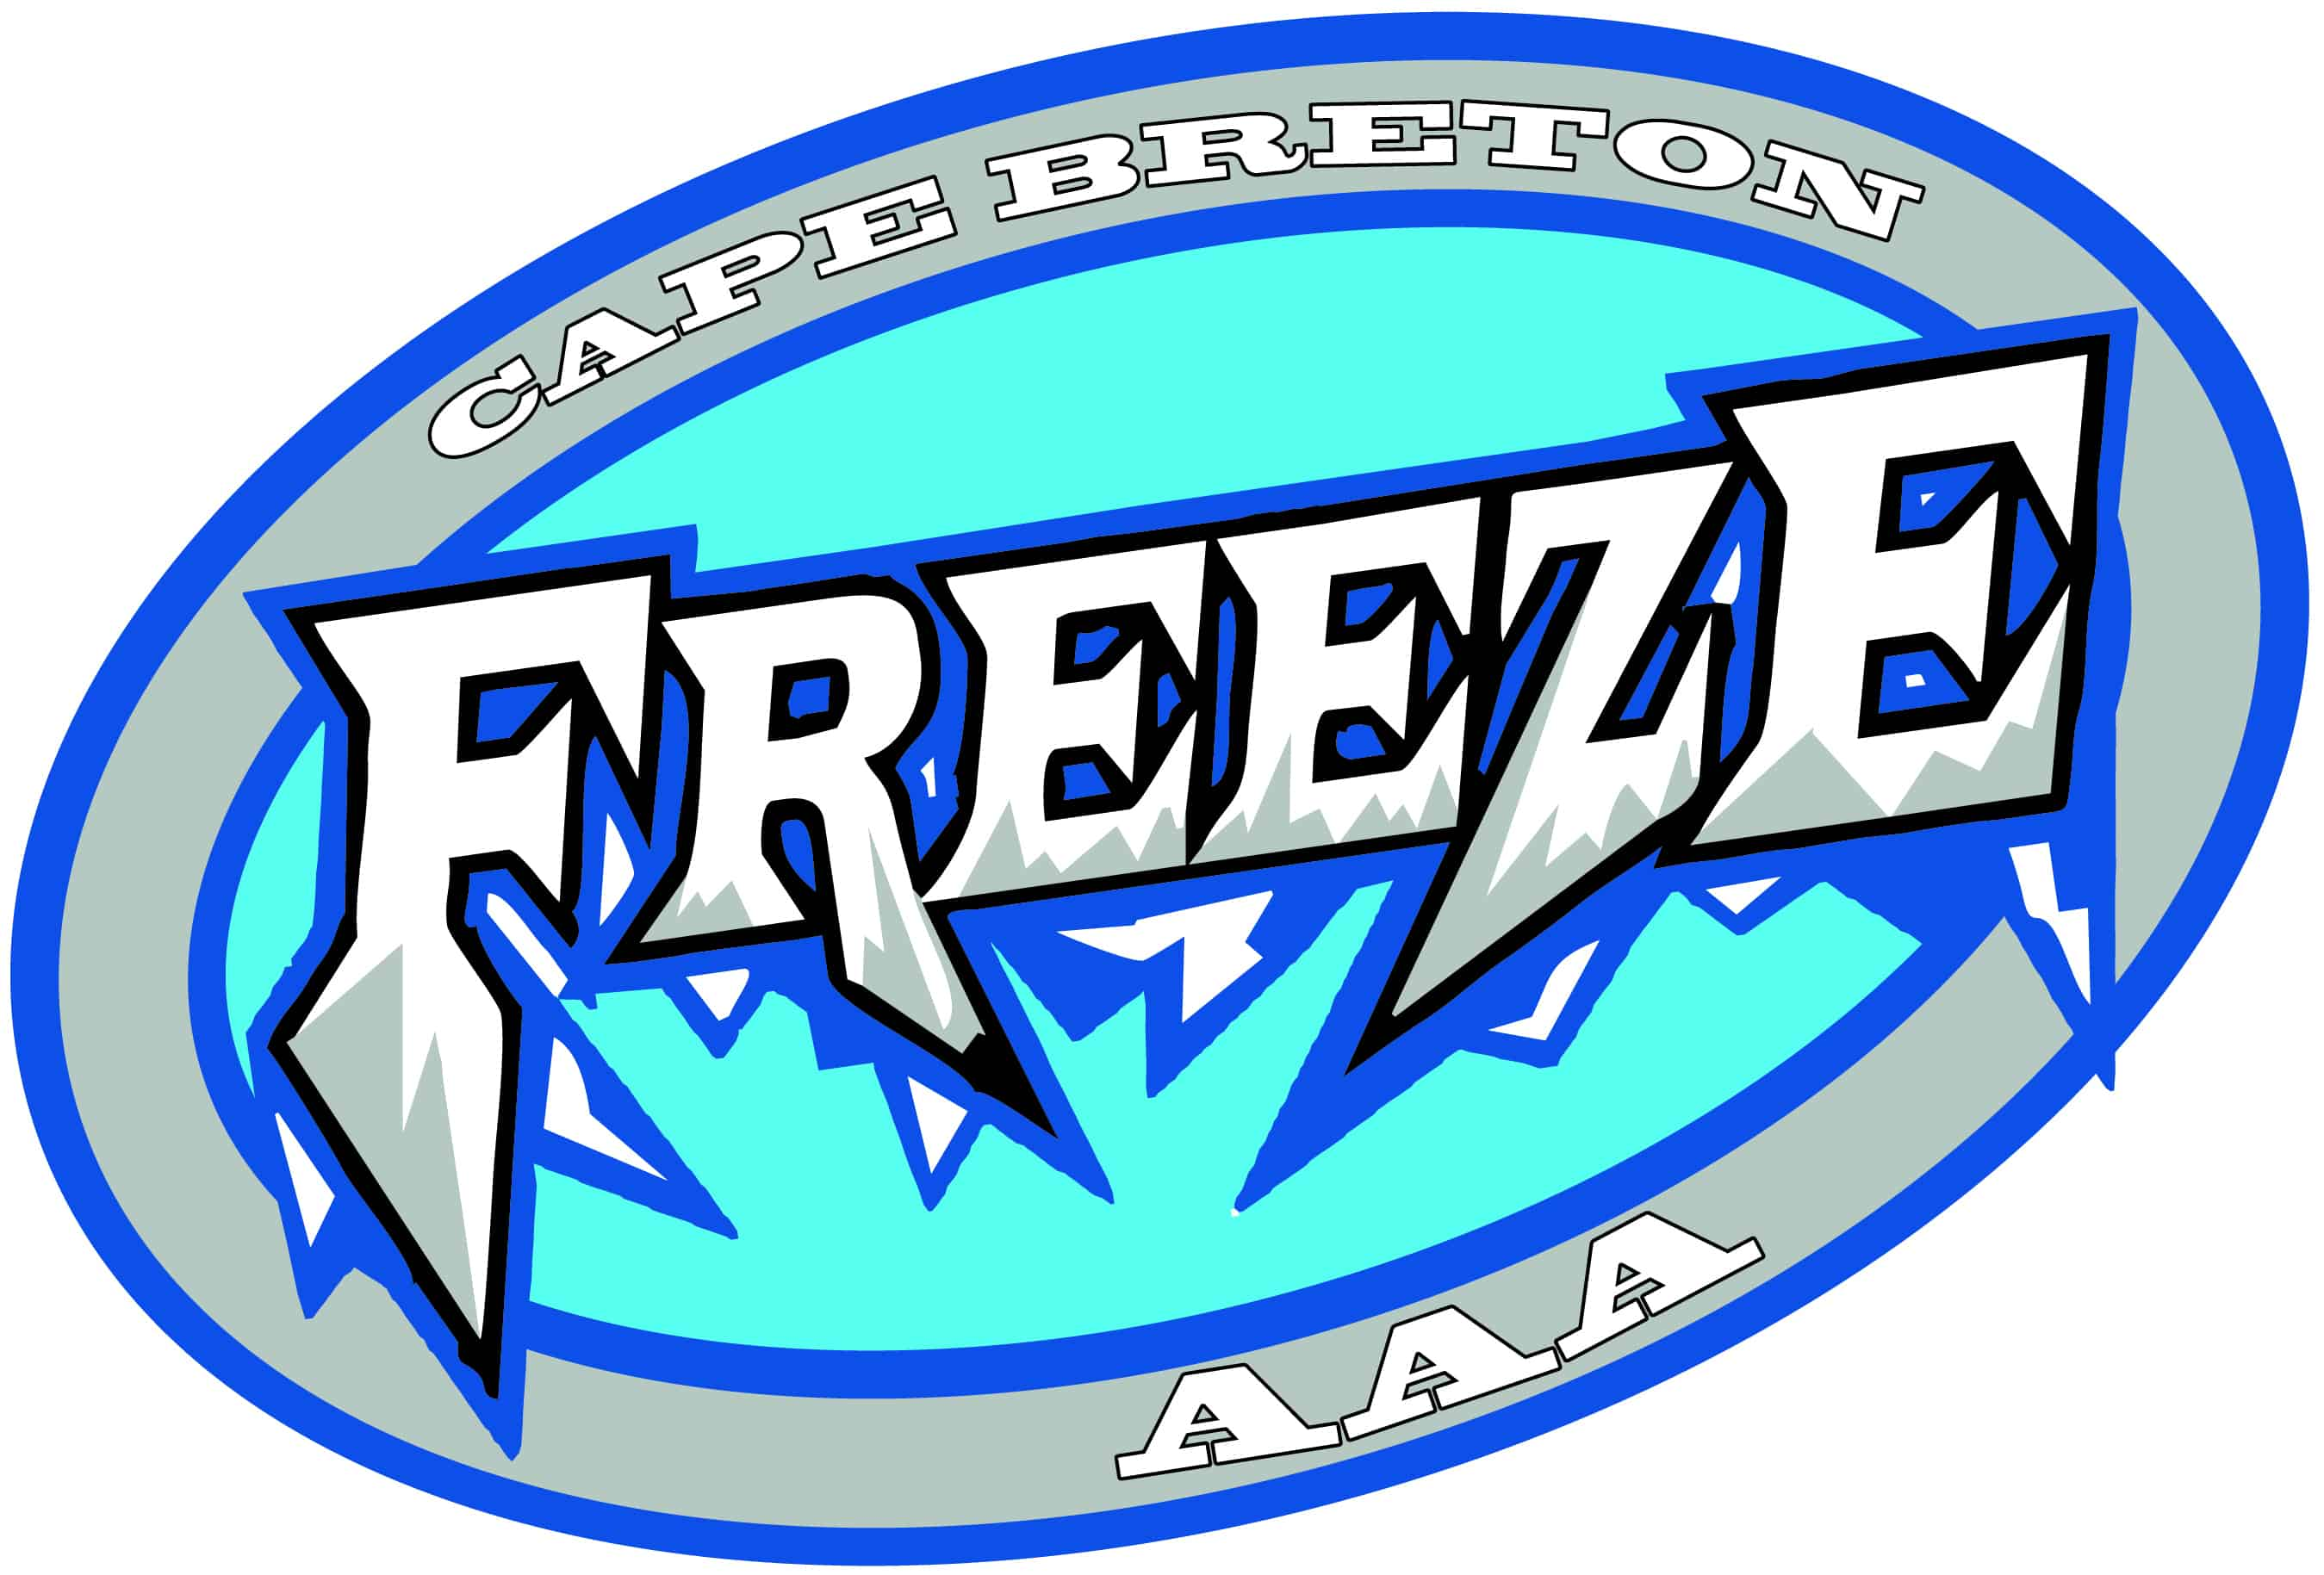 Cape Breton Freeze Atlantic Hockey Group